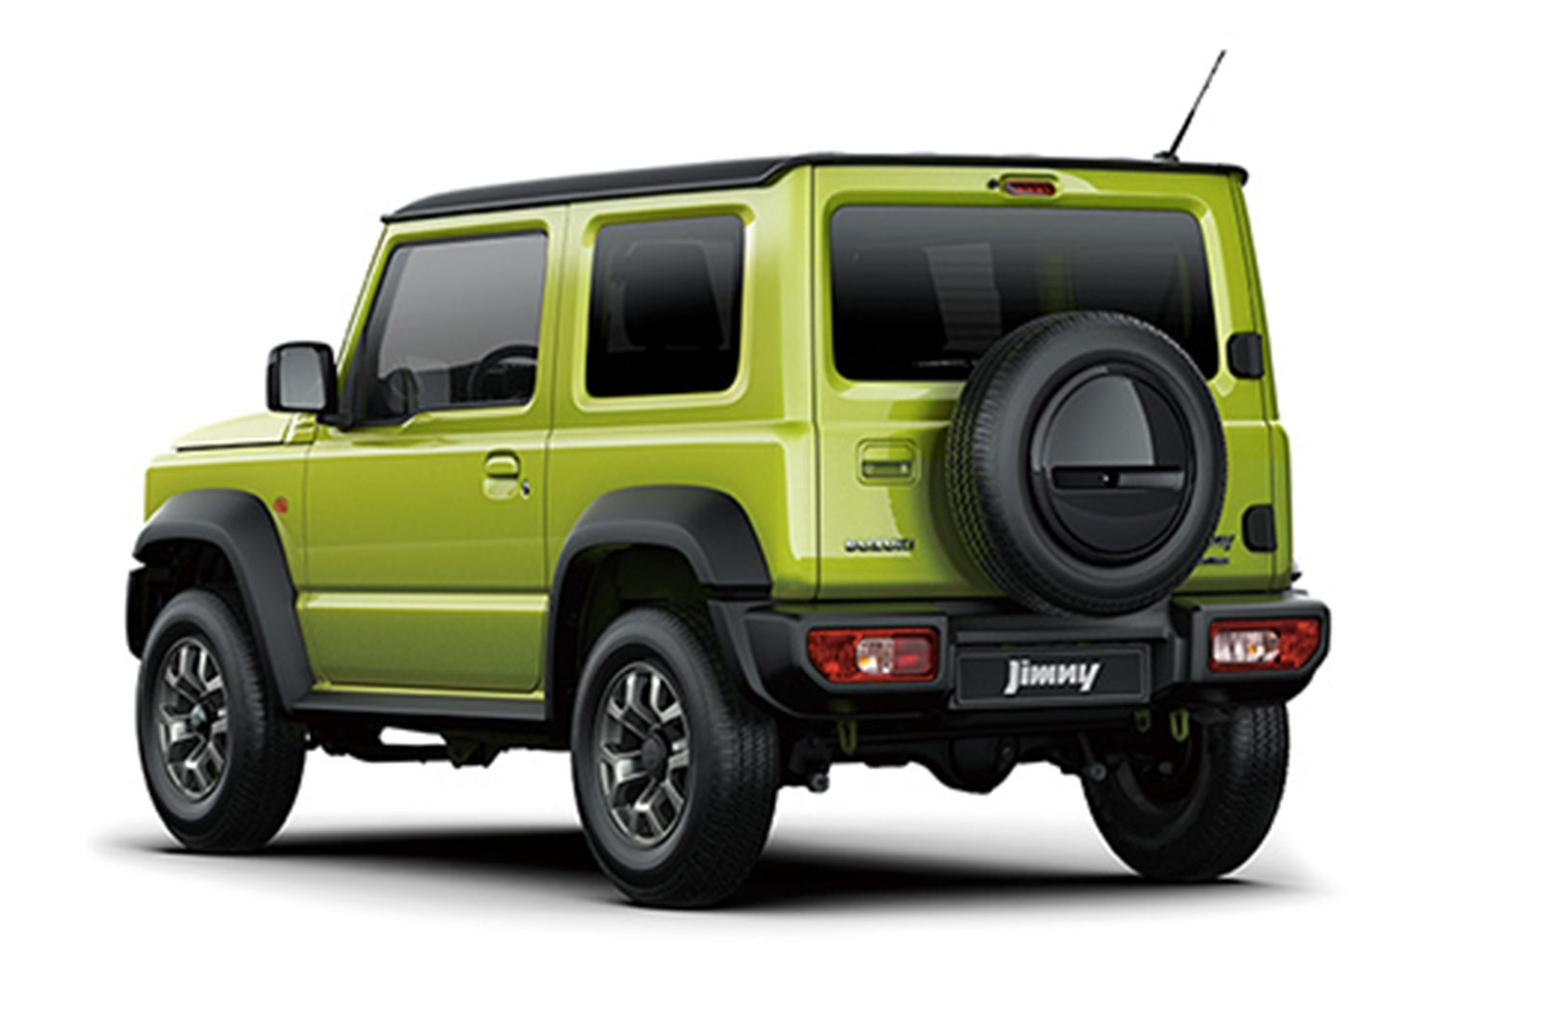 2019 Suzuki Jimny News Design Release >> 2019 Suzuki Jimny – price, specs and release date | What Car?